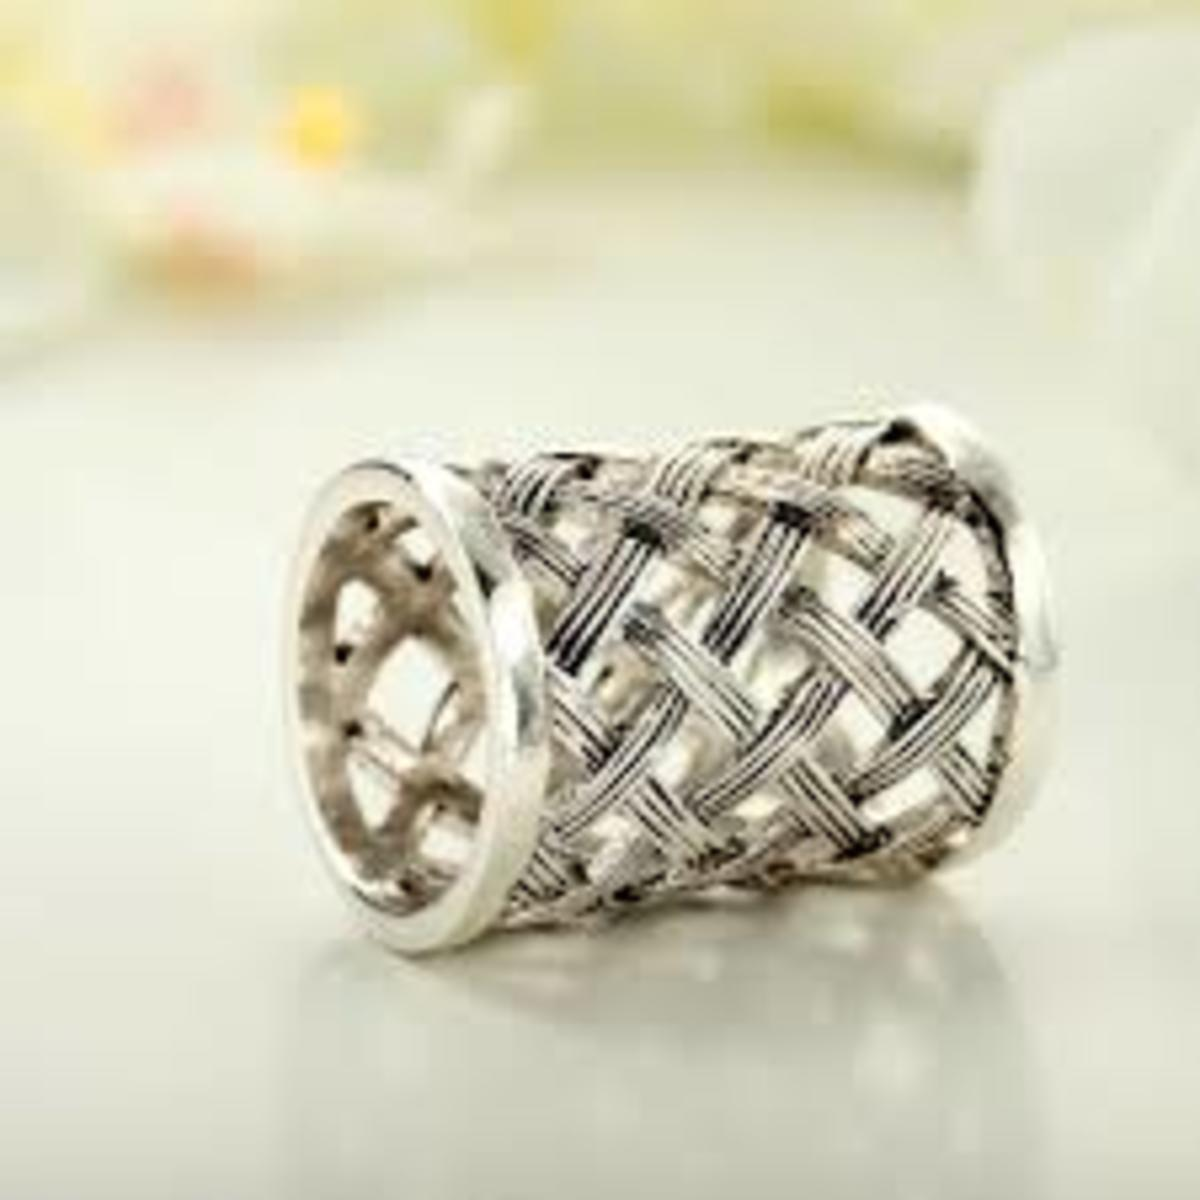 beautiful and intricate antique silver scarf ring